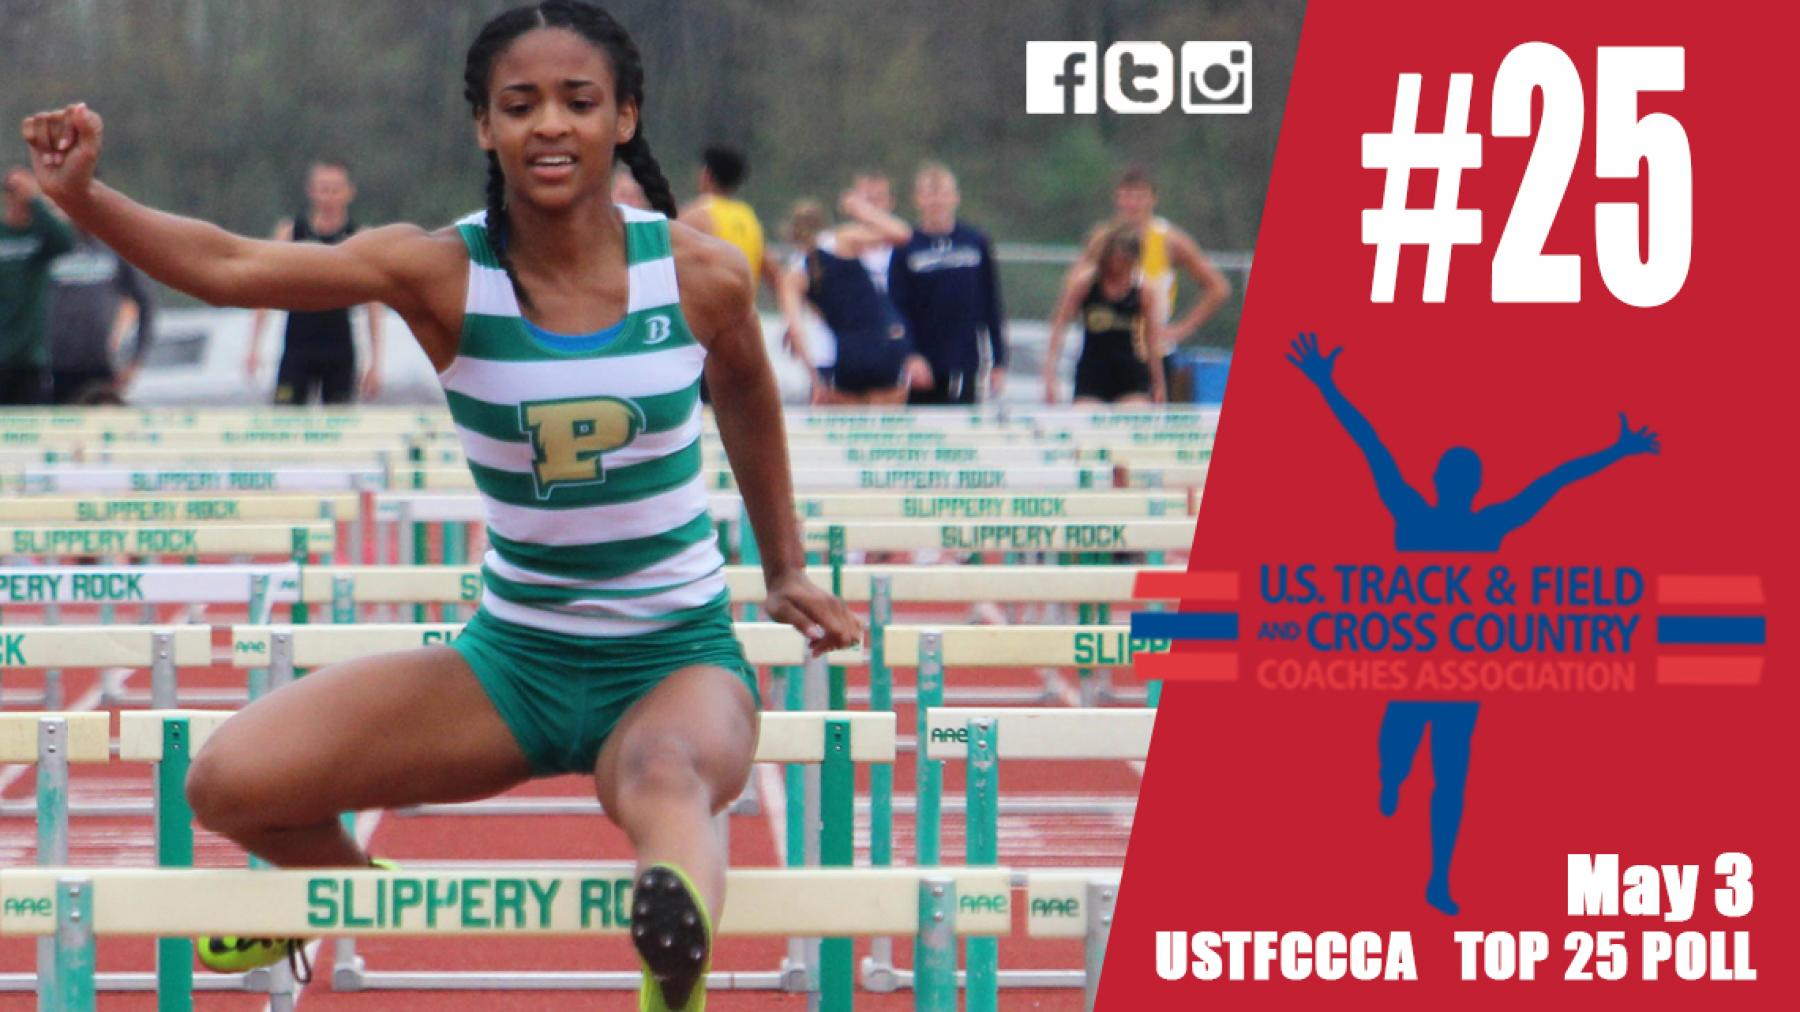 #PPUTF women ranked No. 25 in USTFCCCA Top 25 Poll (May 3)